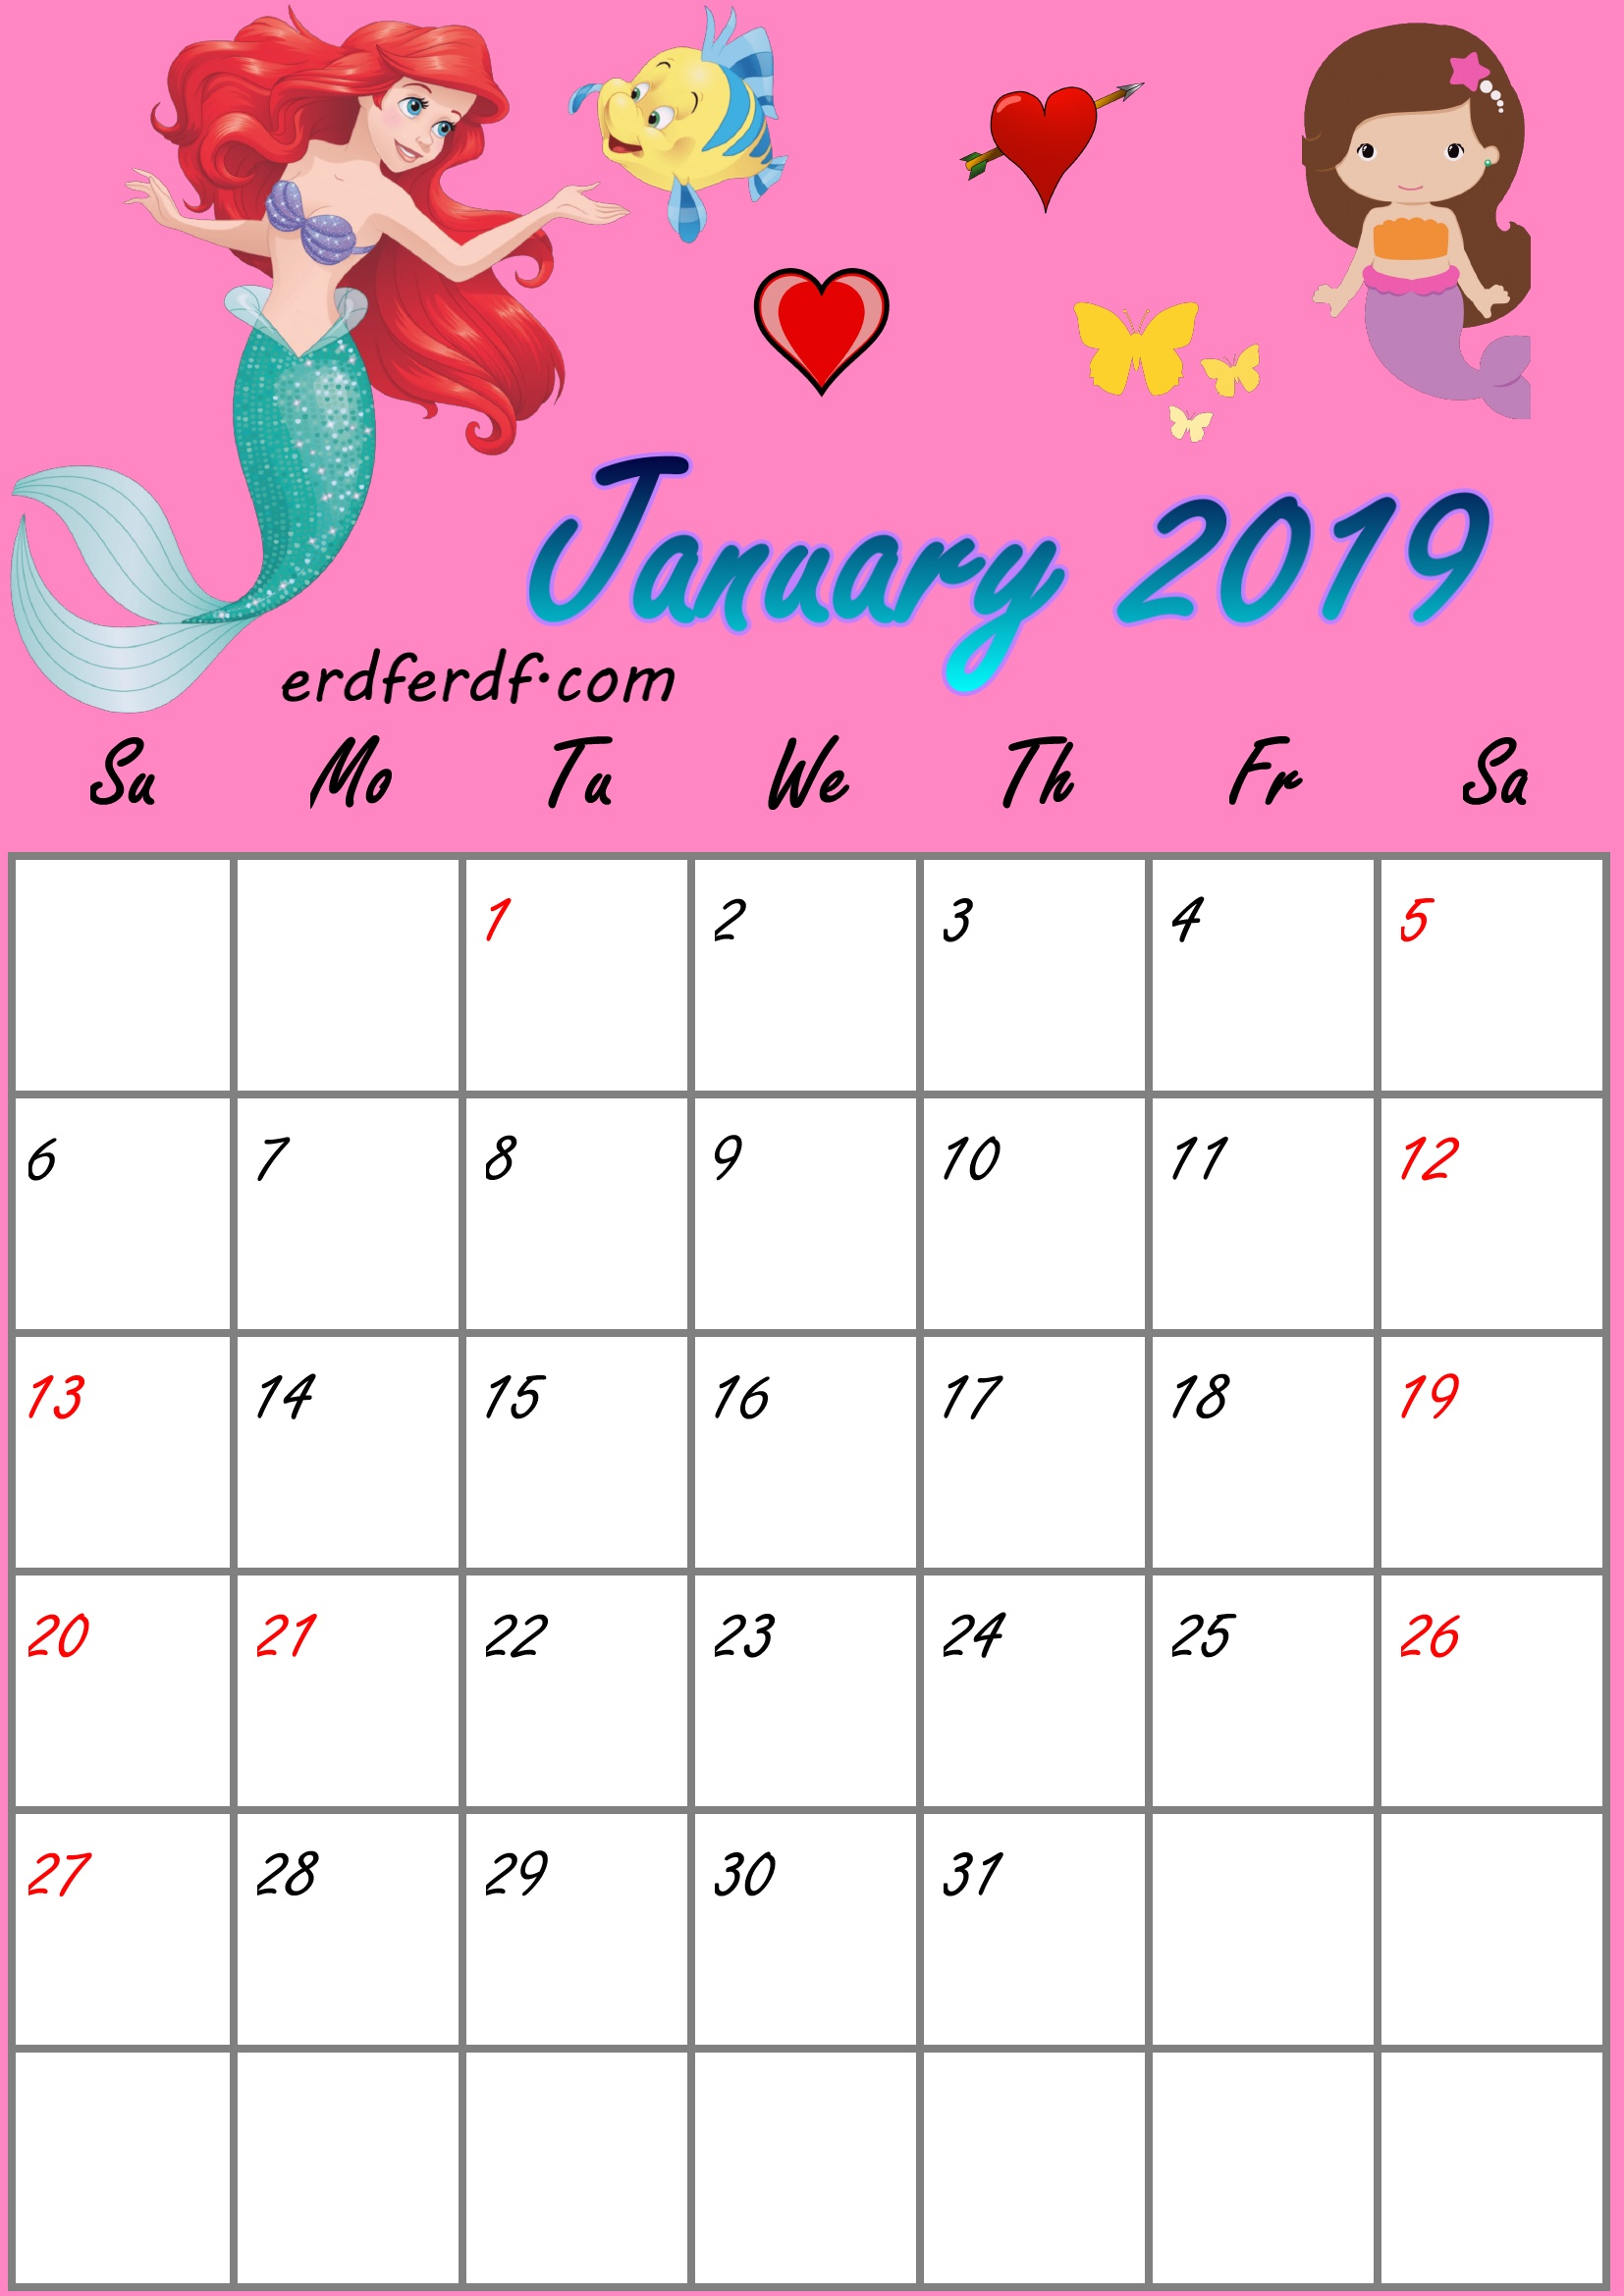 1 January Little Mermaid Monthly Calendar 2019 Free